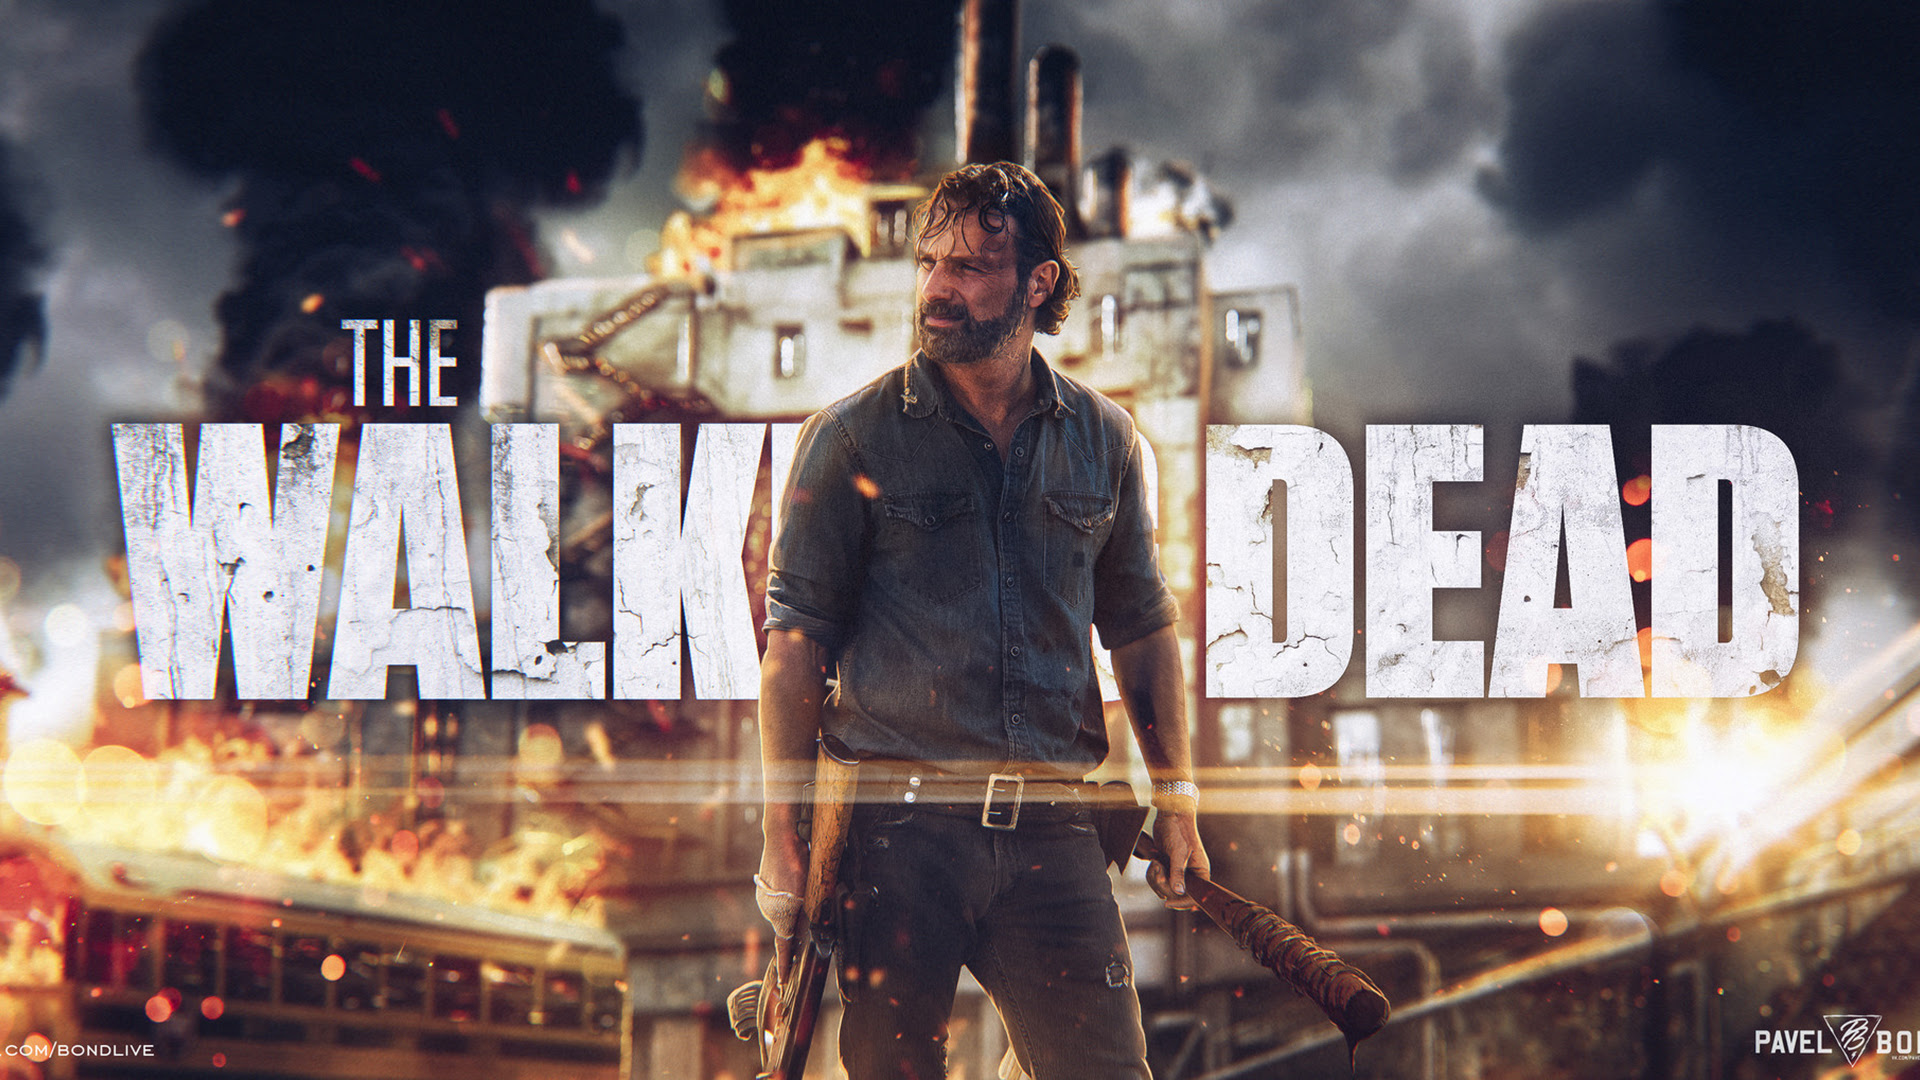 Andrew Lincoln As Rick Grimes In The Walking Dead Wallpapers Hd